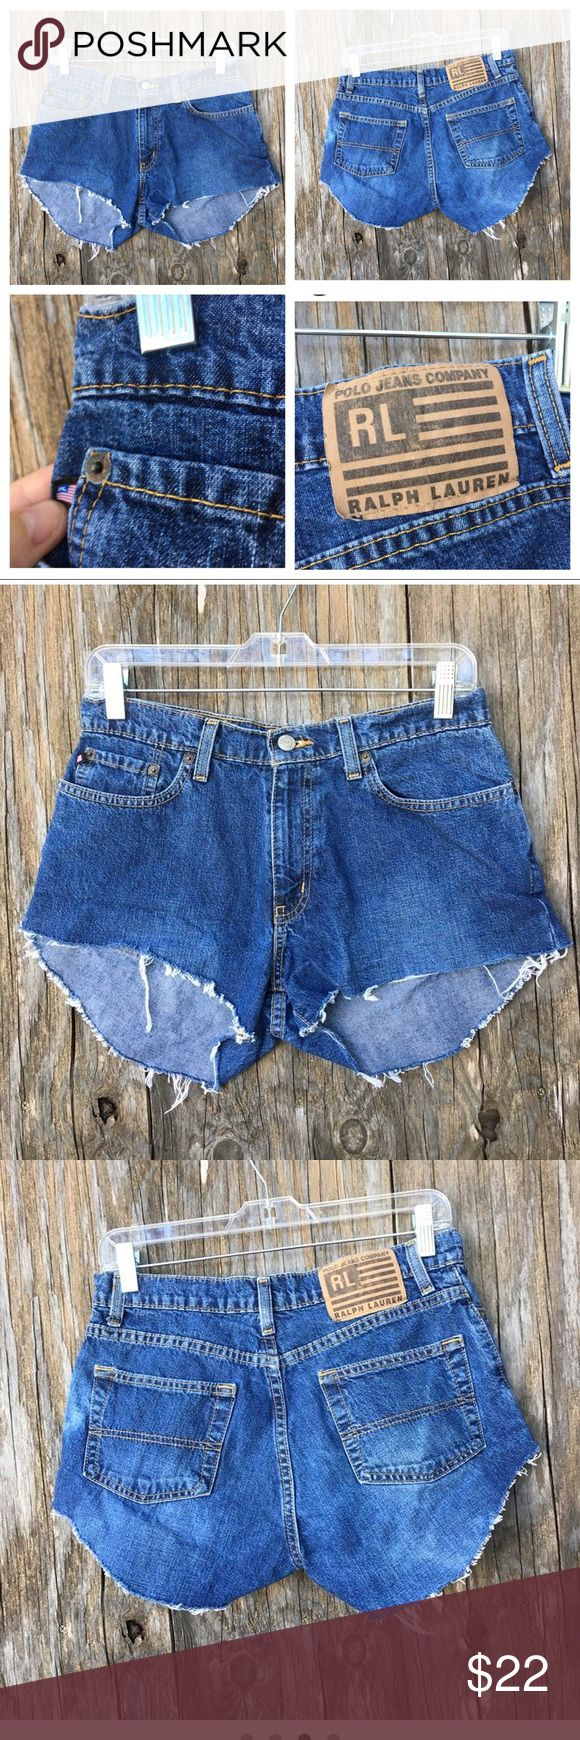 Vintage LRL Ralph Lauren Cut Off Shorts Ralph Lauren cut off destroyed frayed shorts Knicker cut length ~~ Longer in the back. High in sides and front.  Cut Off and washed to a perfect fray Perfect for the upcoming Festival Season.  Waist is 28 Size is 2-4 .  M Lauren Ralph Lauren Shorts Jean Shorts